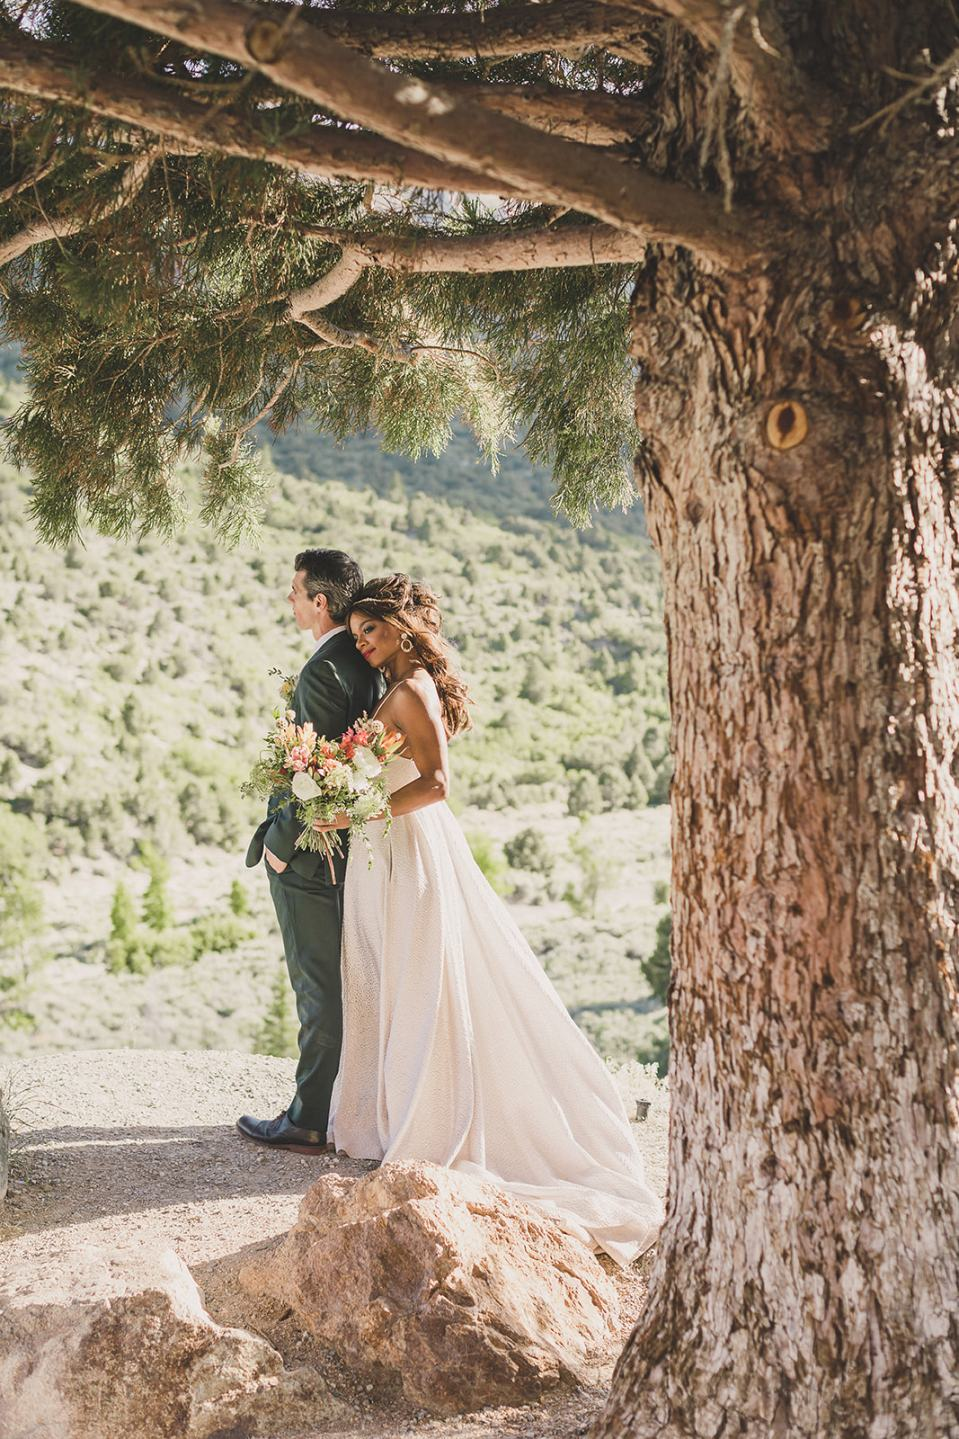 woodsy elopement portraits photographed by Taylor Made Photography